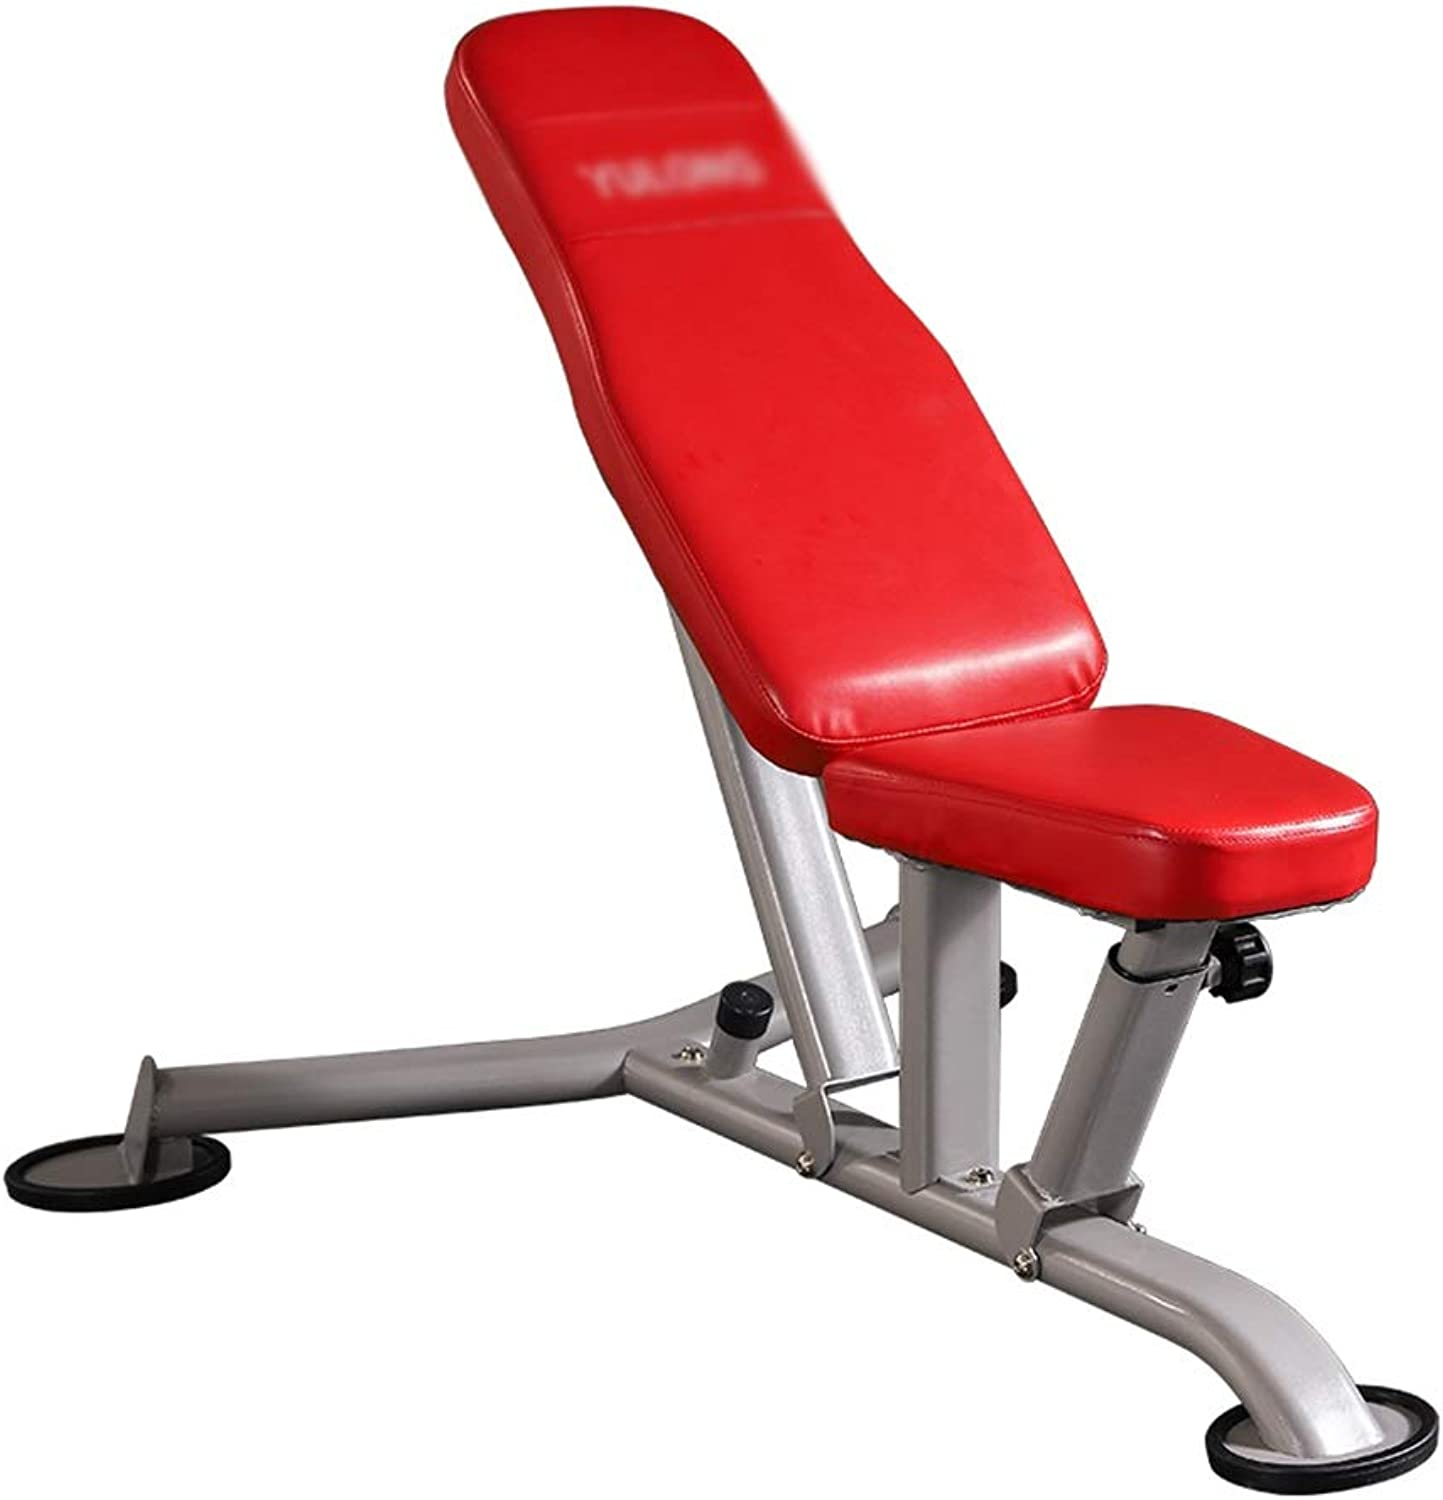 Commercial Weight Bench Professional Fitness Chair Home Fitness Equipment Situp Bench Abdominal Trainer Bearing 250kg